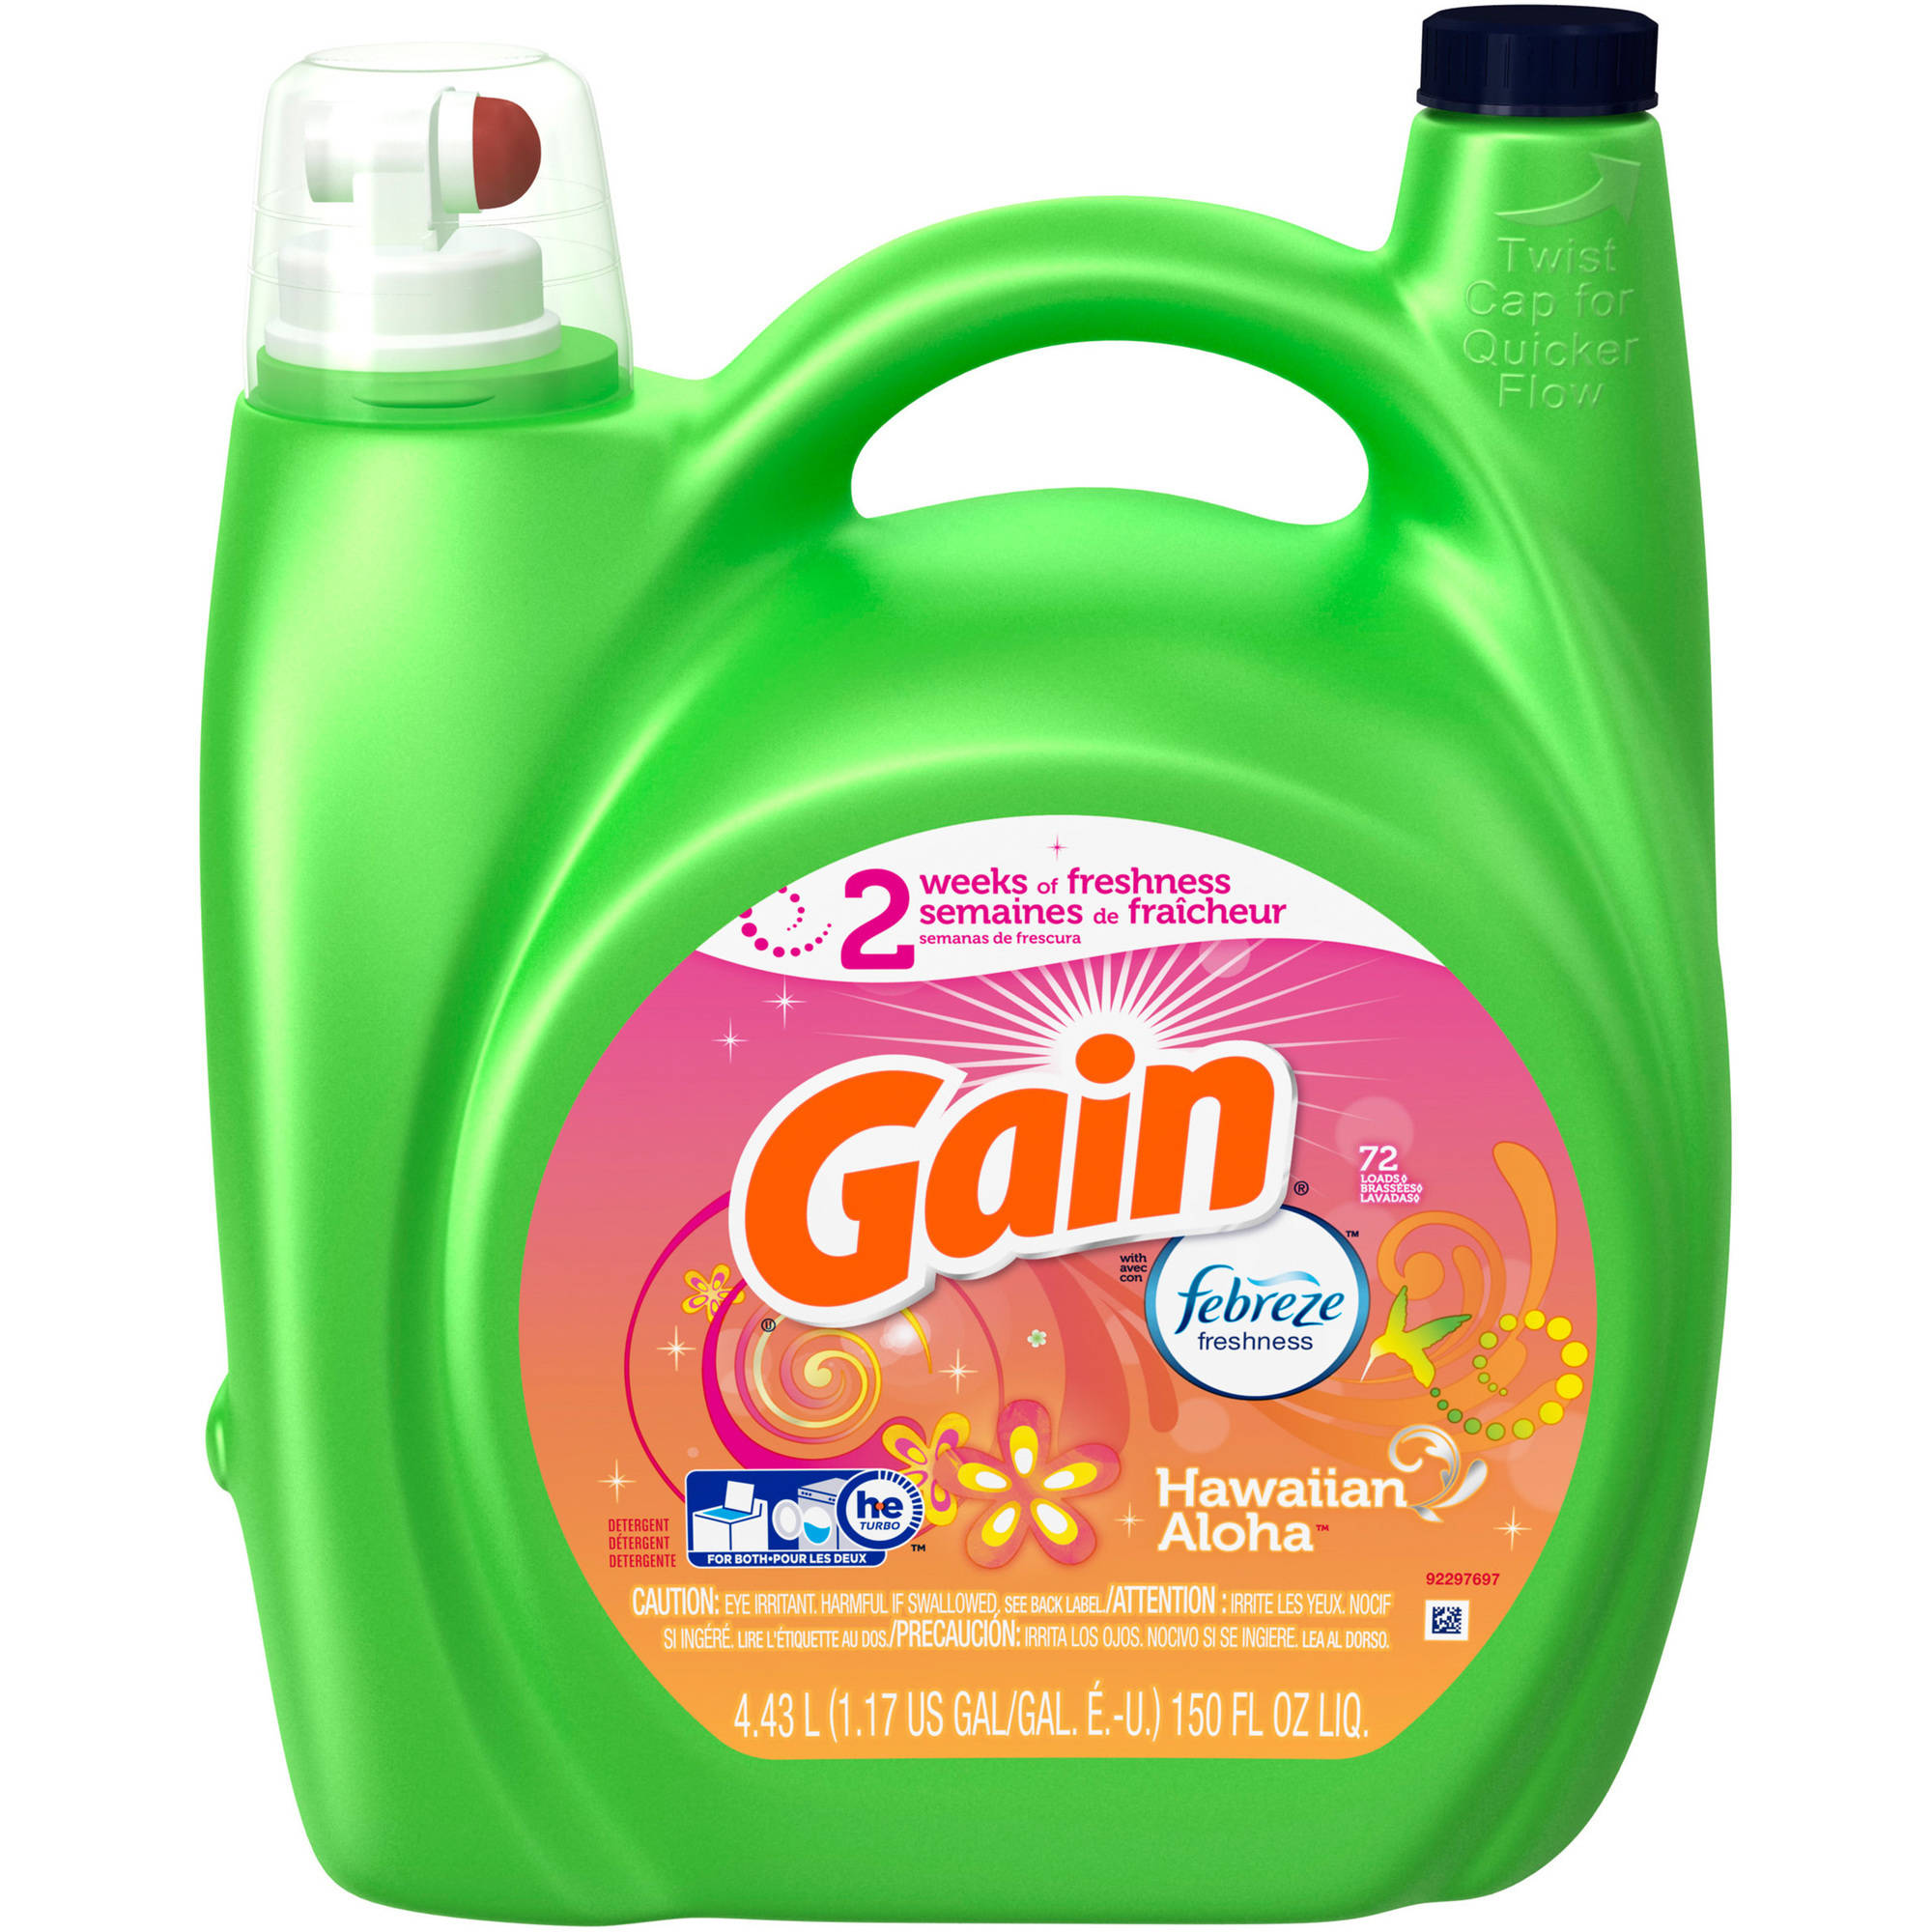 Gain Liquid Laundry Detergent with Febreze Freshness, Hawaiian Aloha Scent, 72 loads, 150 fl oz